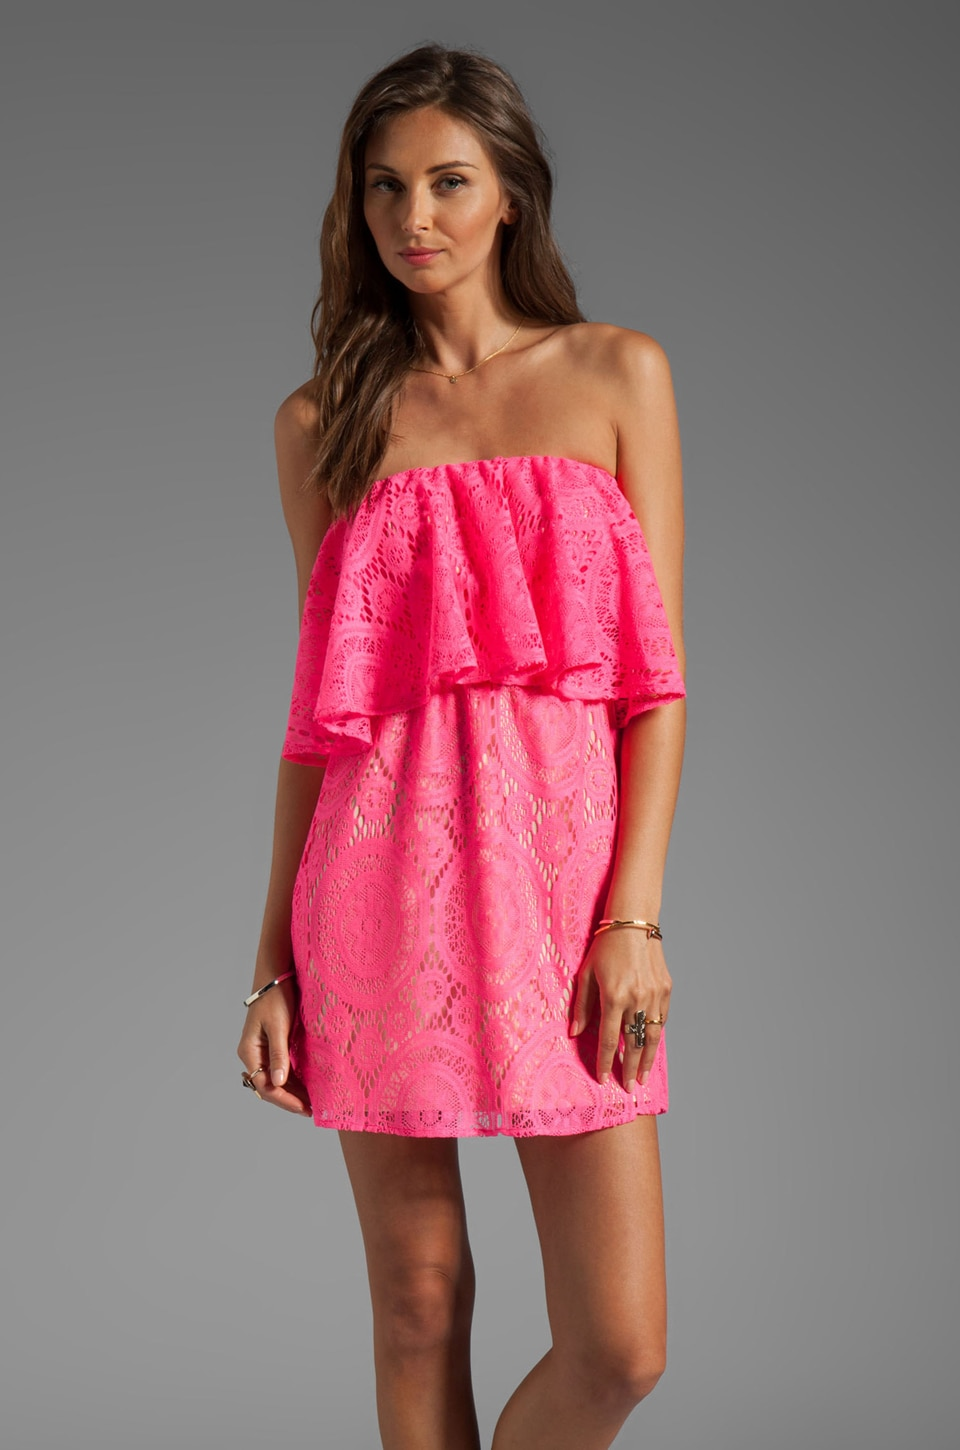 T-Bags LosAngeles Tiered Strapless Crochet Mini Dress in Neon Fuchsia